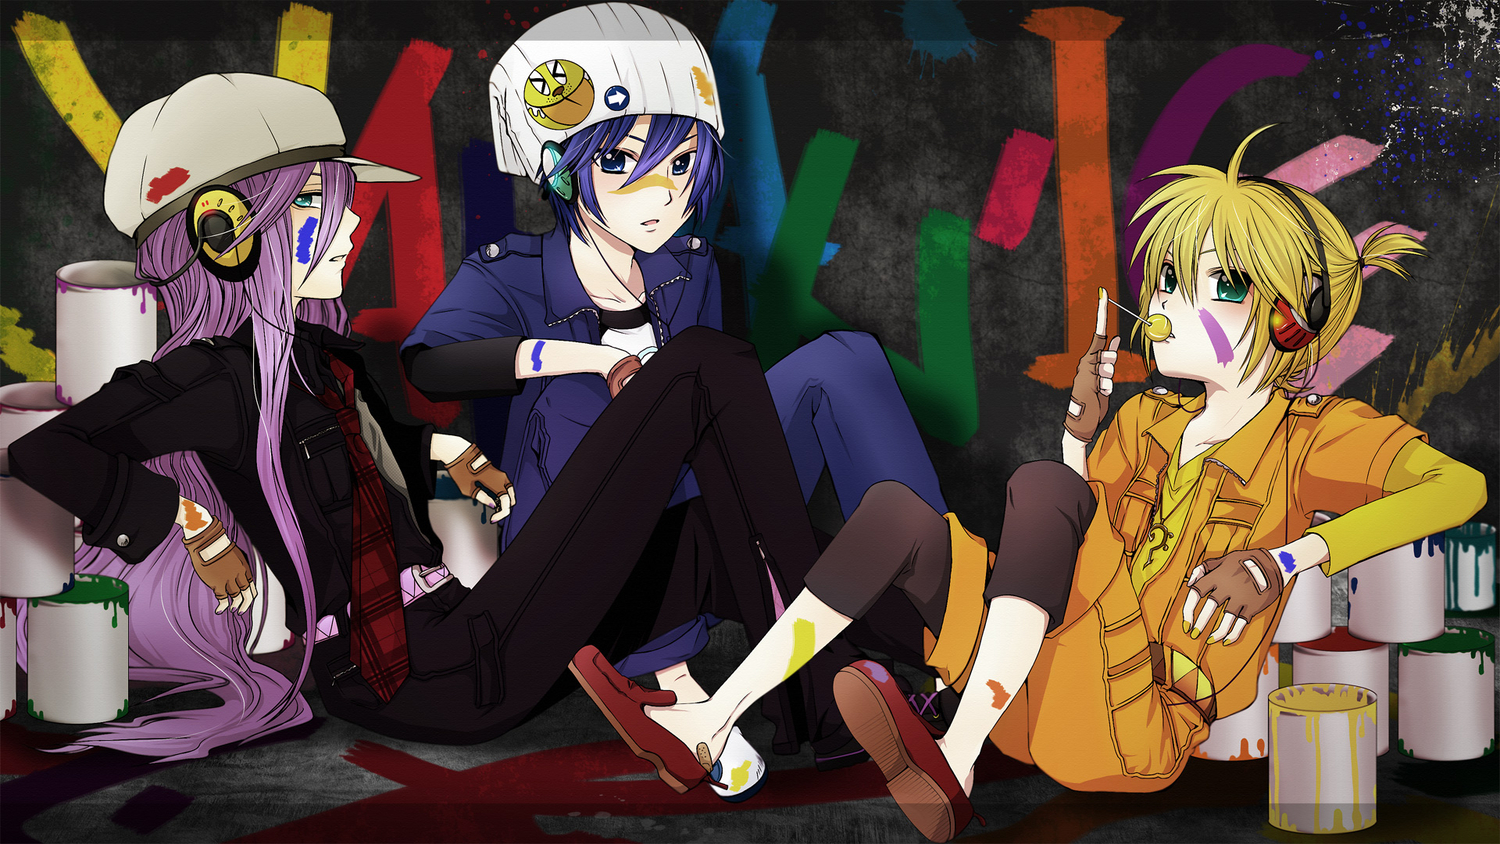 agi_(holic2007) aqua_eyes blonde_hair blue_eyes blue_hair candy food gloves hat headphones kagamine_len kaito kamui_gakupo lollipop long_hair ponytail purple_hair short_hair tie vocaloid